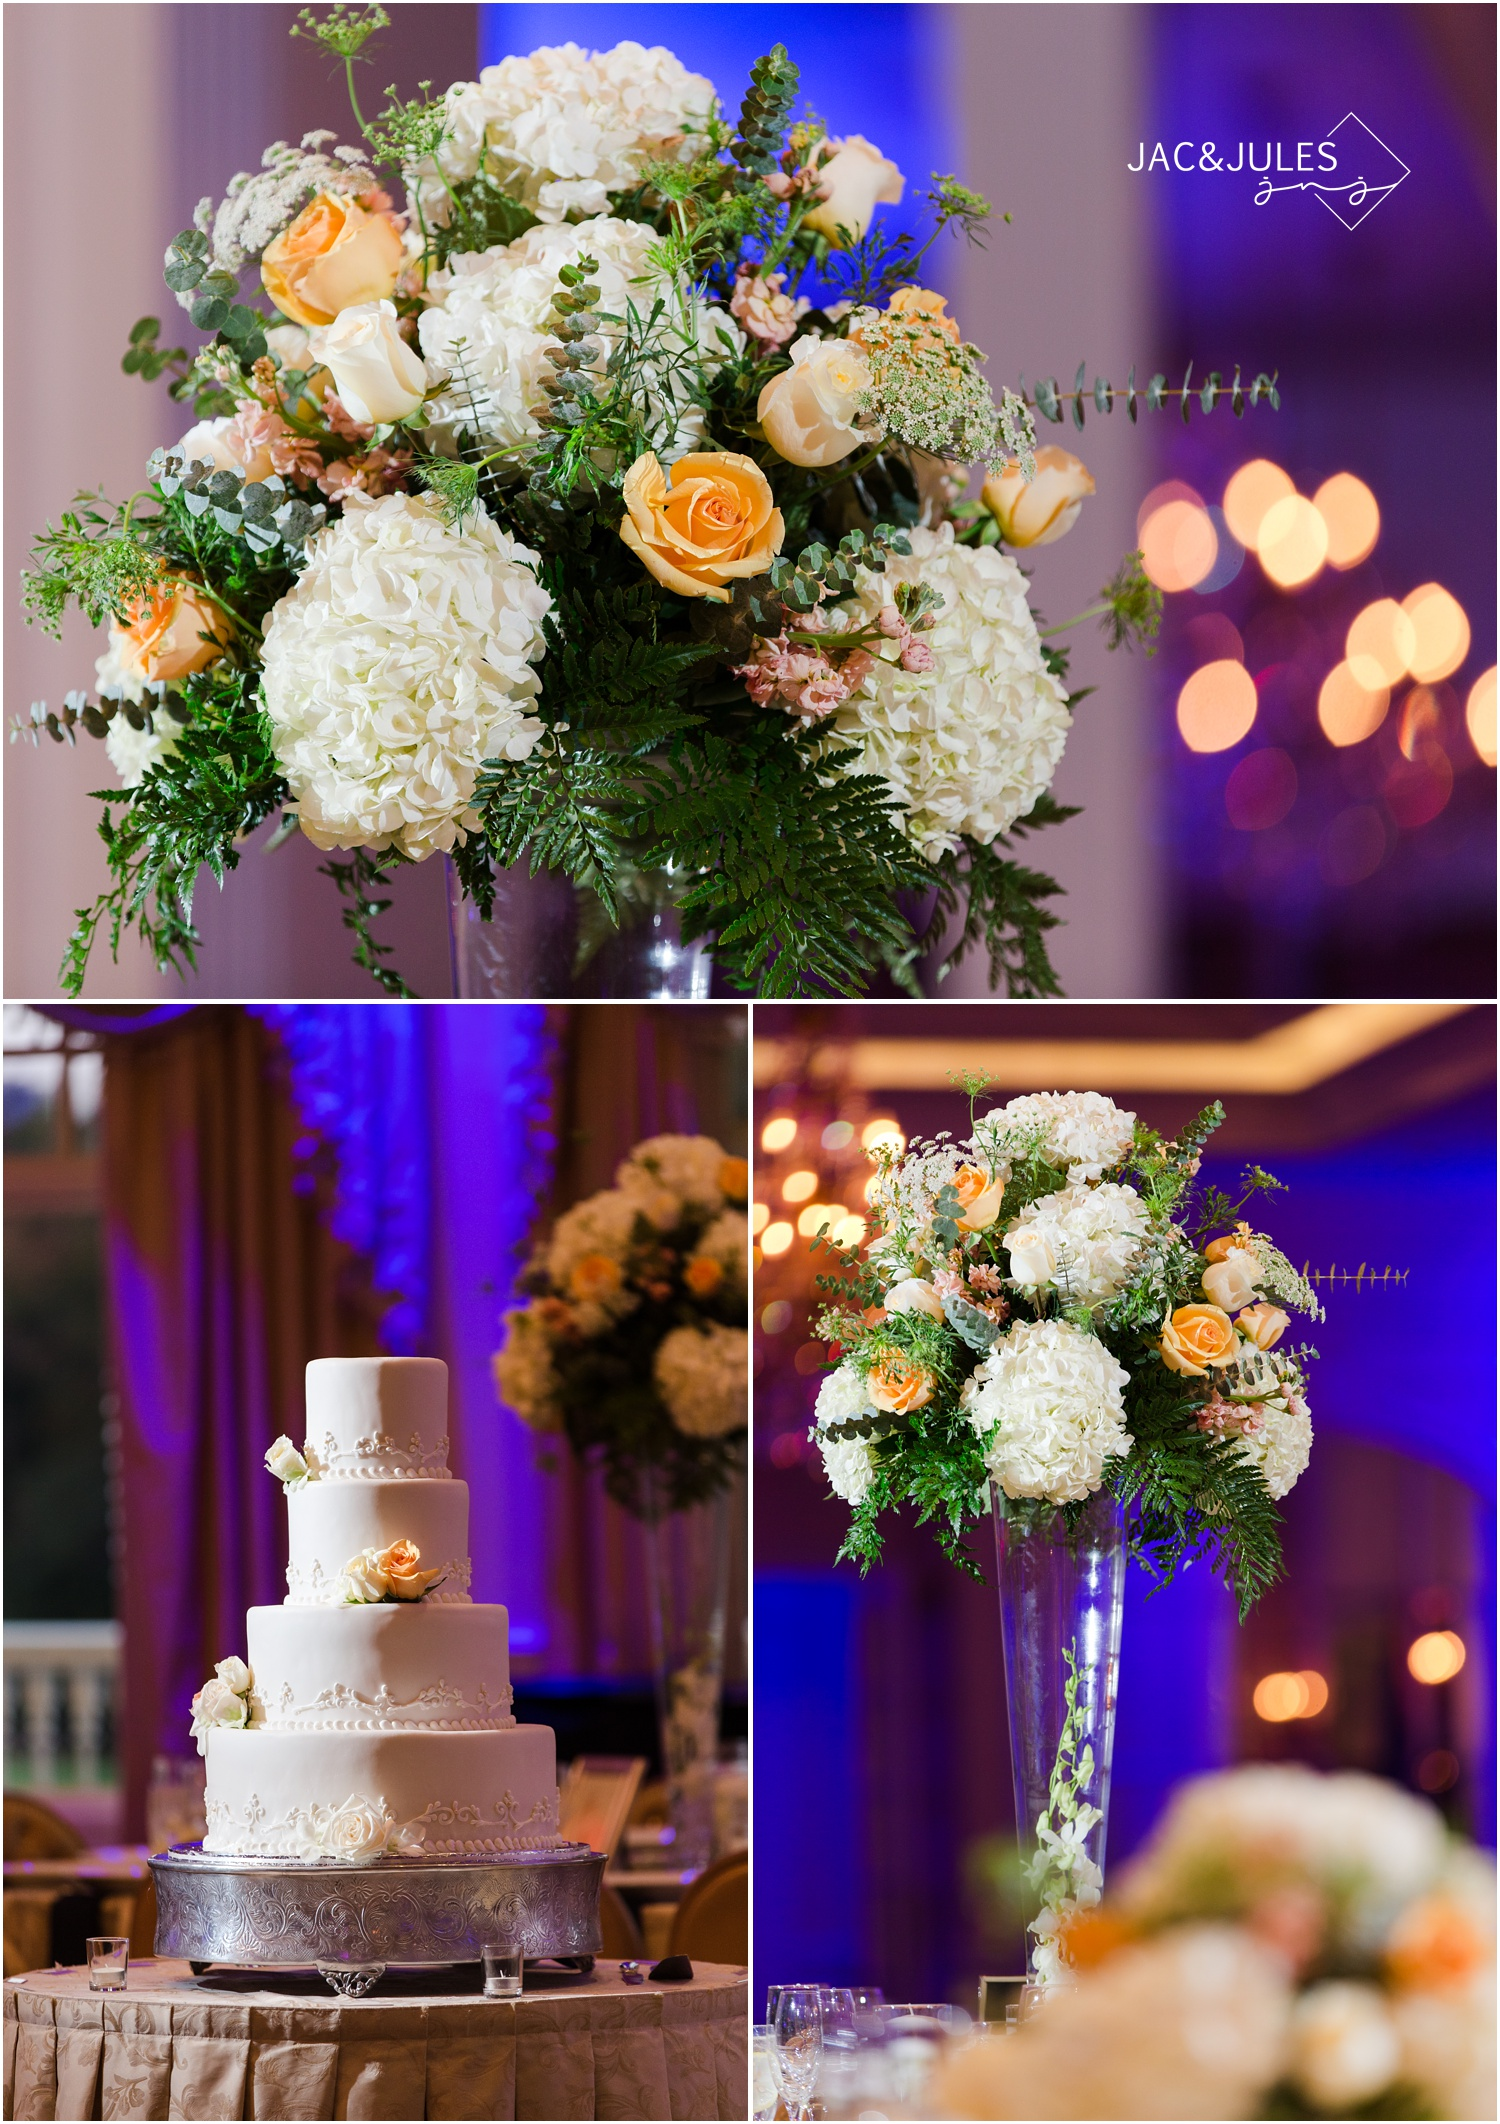 Wedding cake and floral decor at Eagle Oaks Golf and Country Club in Farmingdale, NJ.